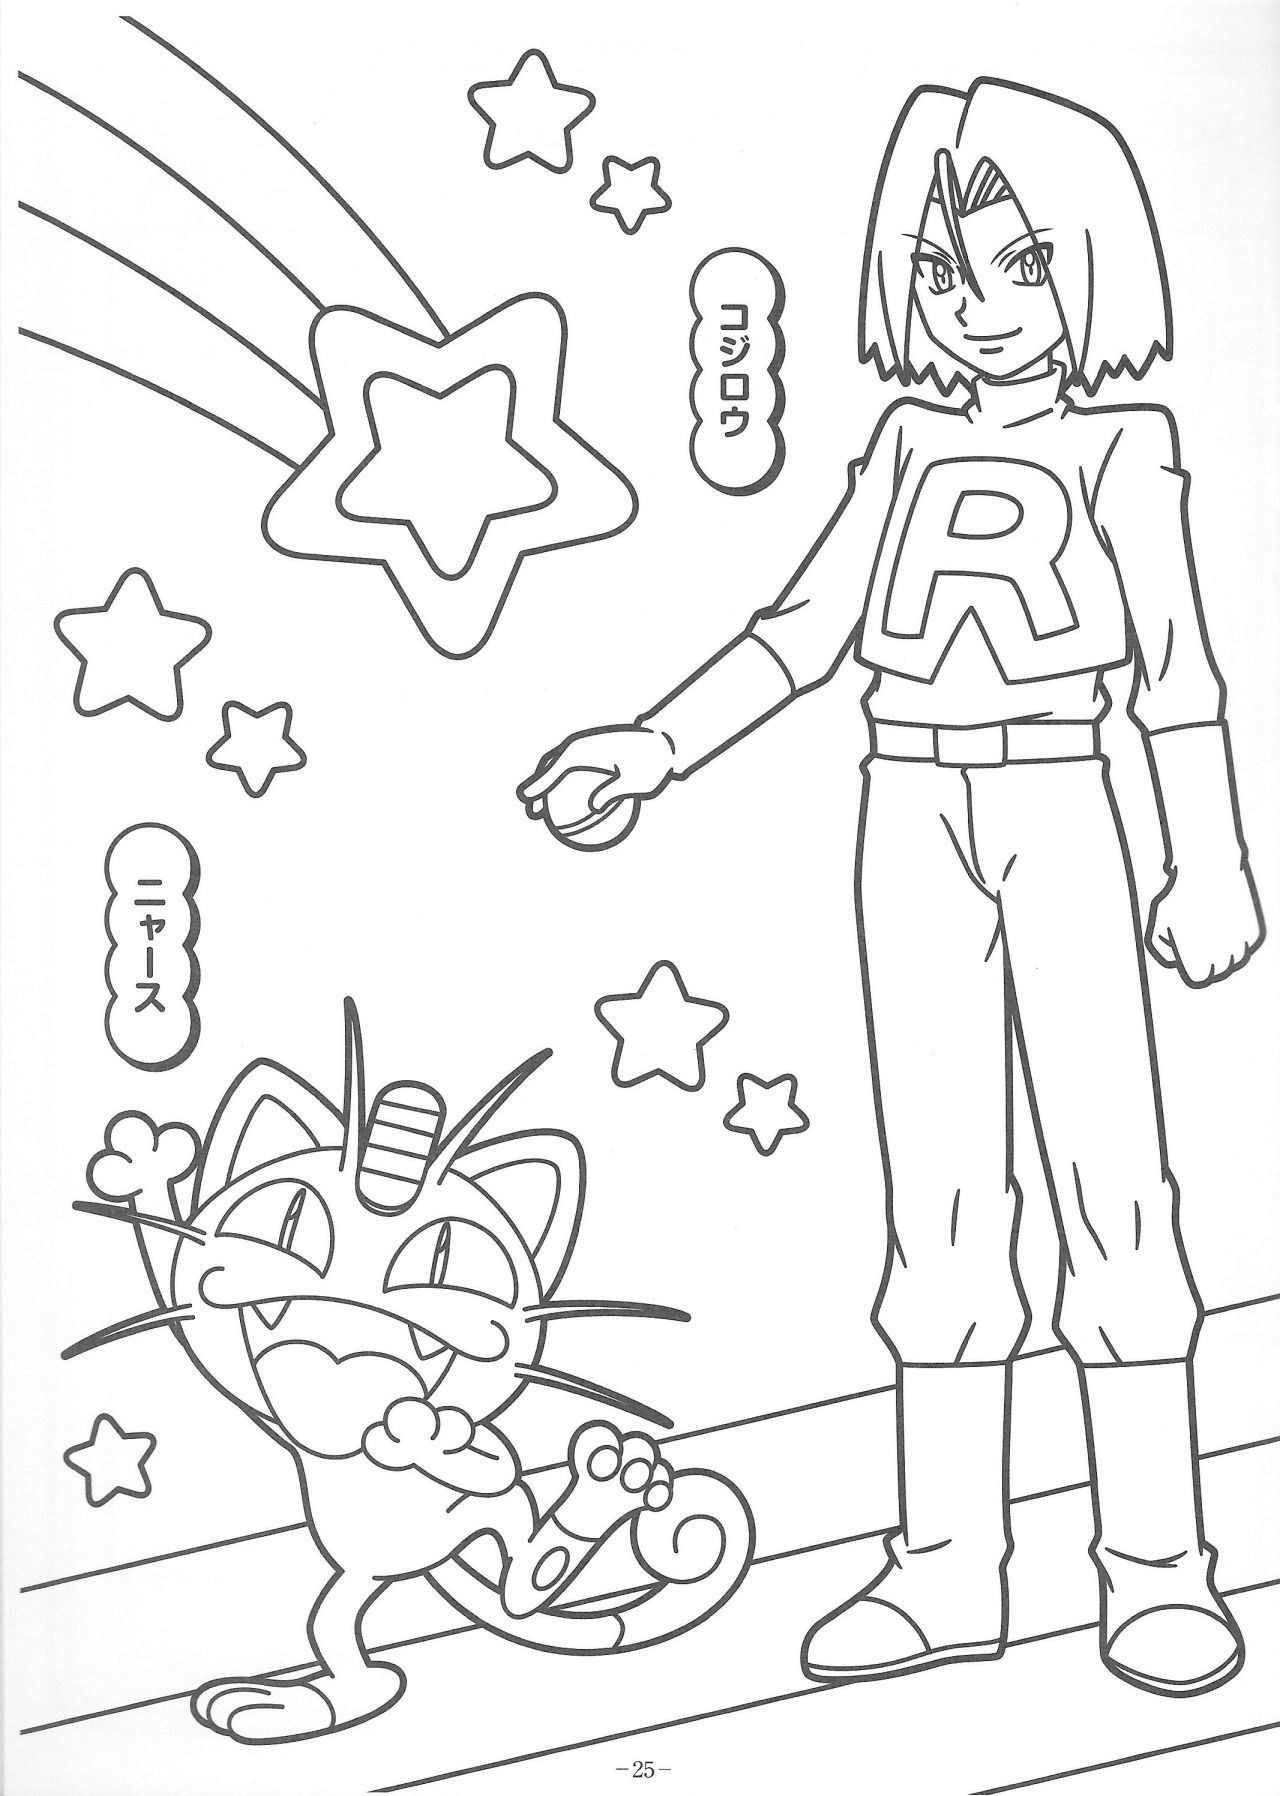 Team Rocket Coloring Book Pokemon Coloring Pages Cute